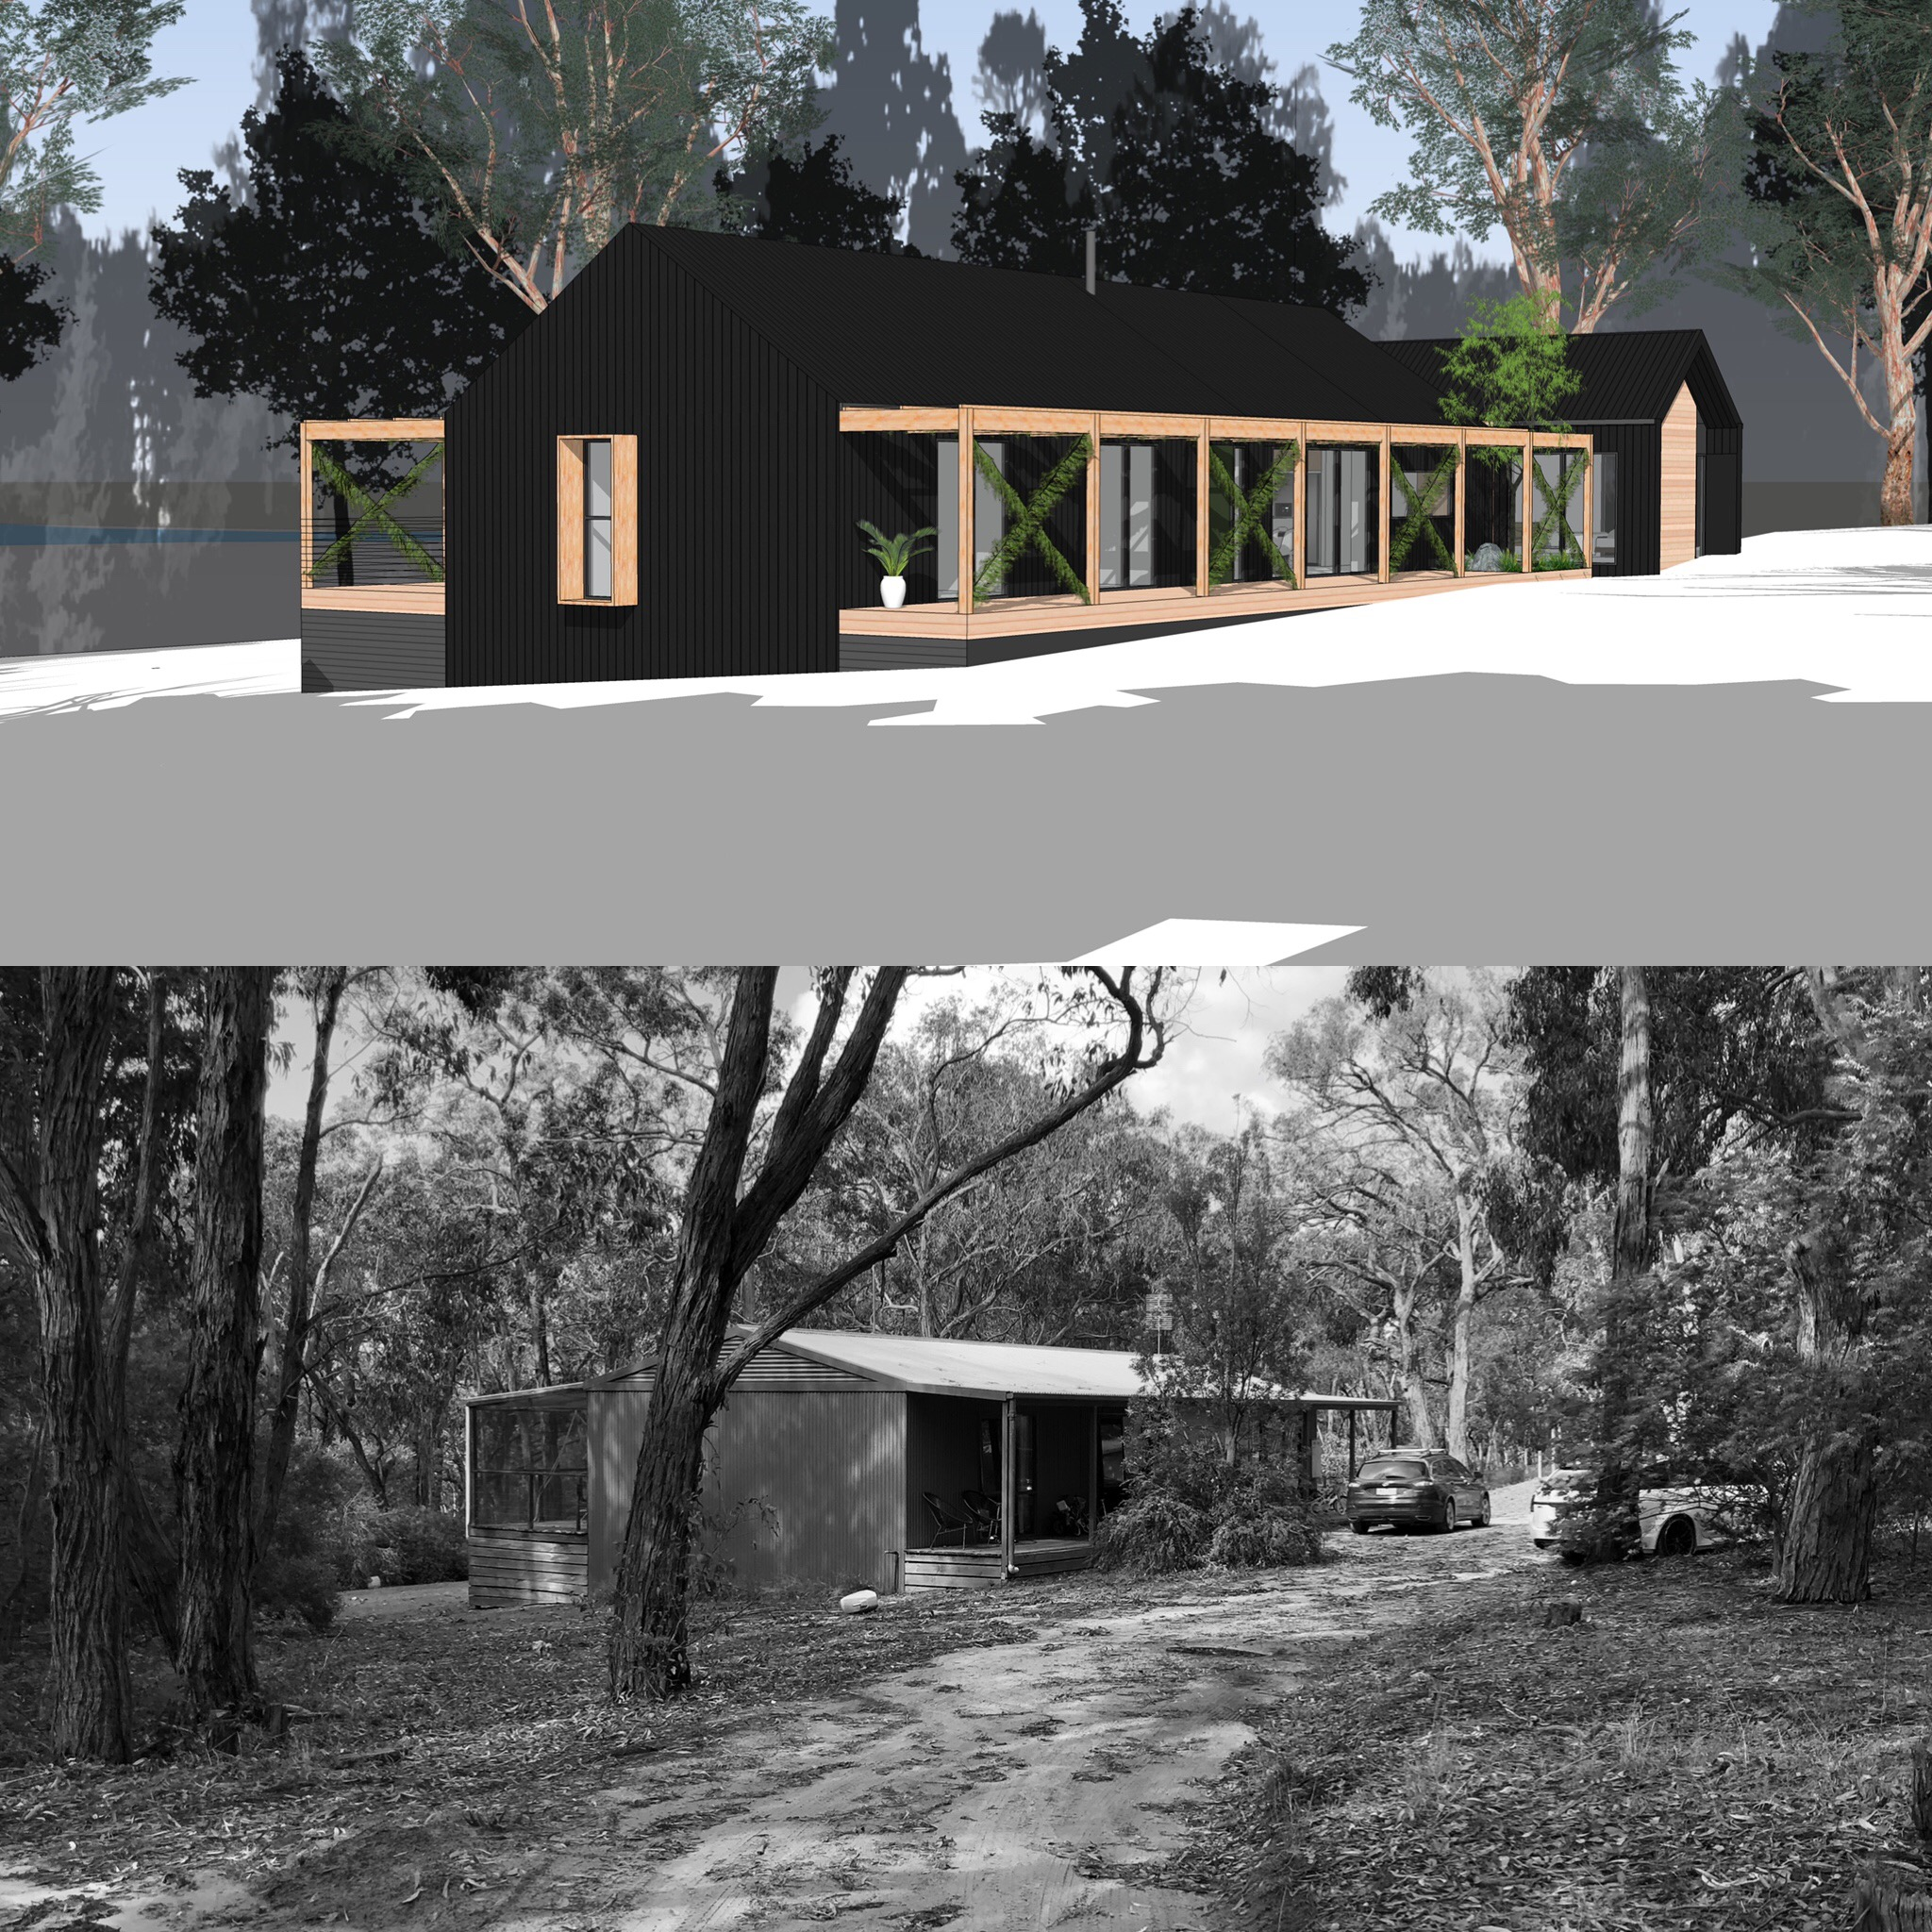 Concept Design - Before & After…